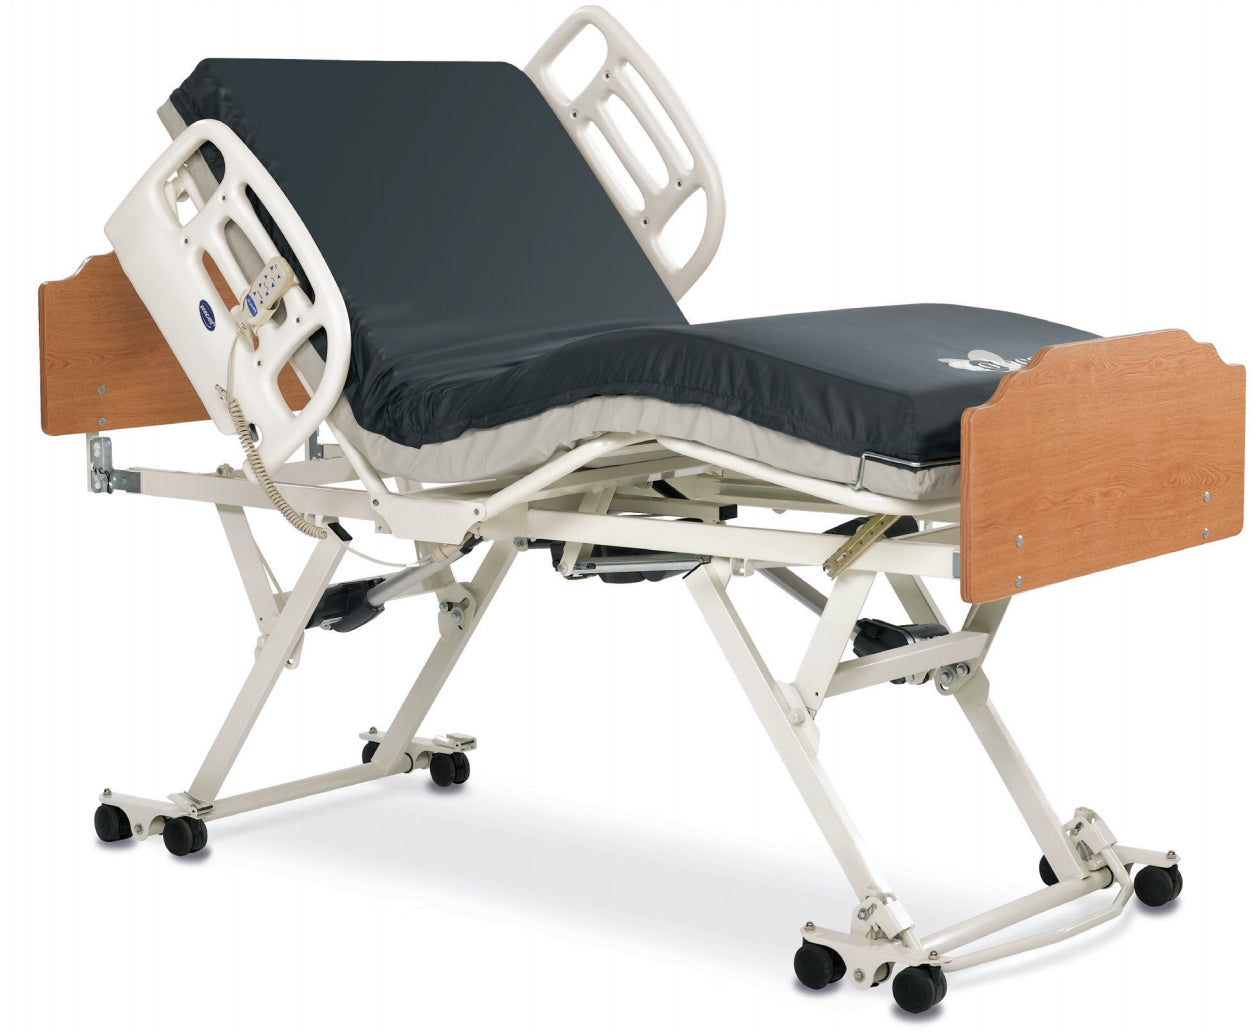 Northcoast Home Medical Equipment | Rentals | Mobility